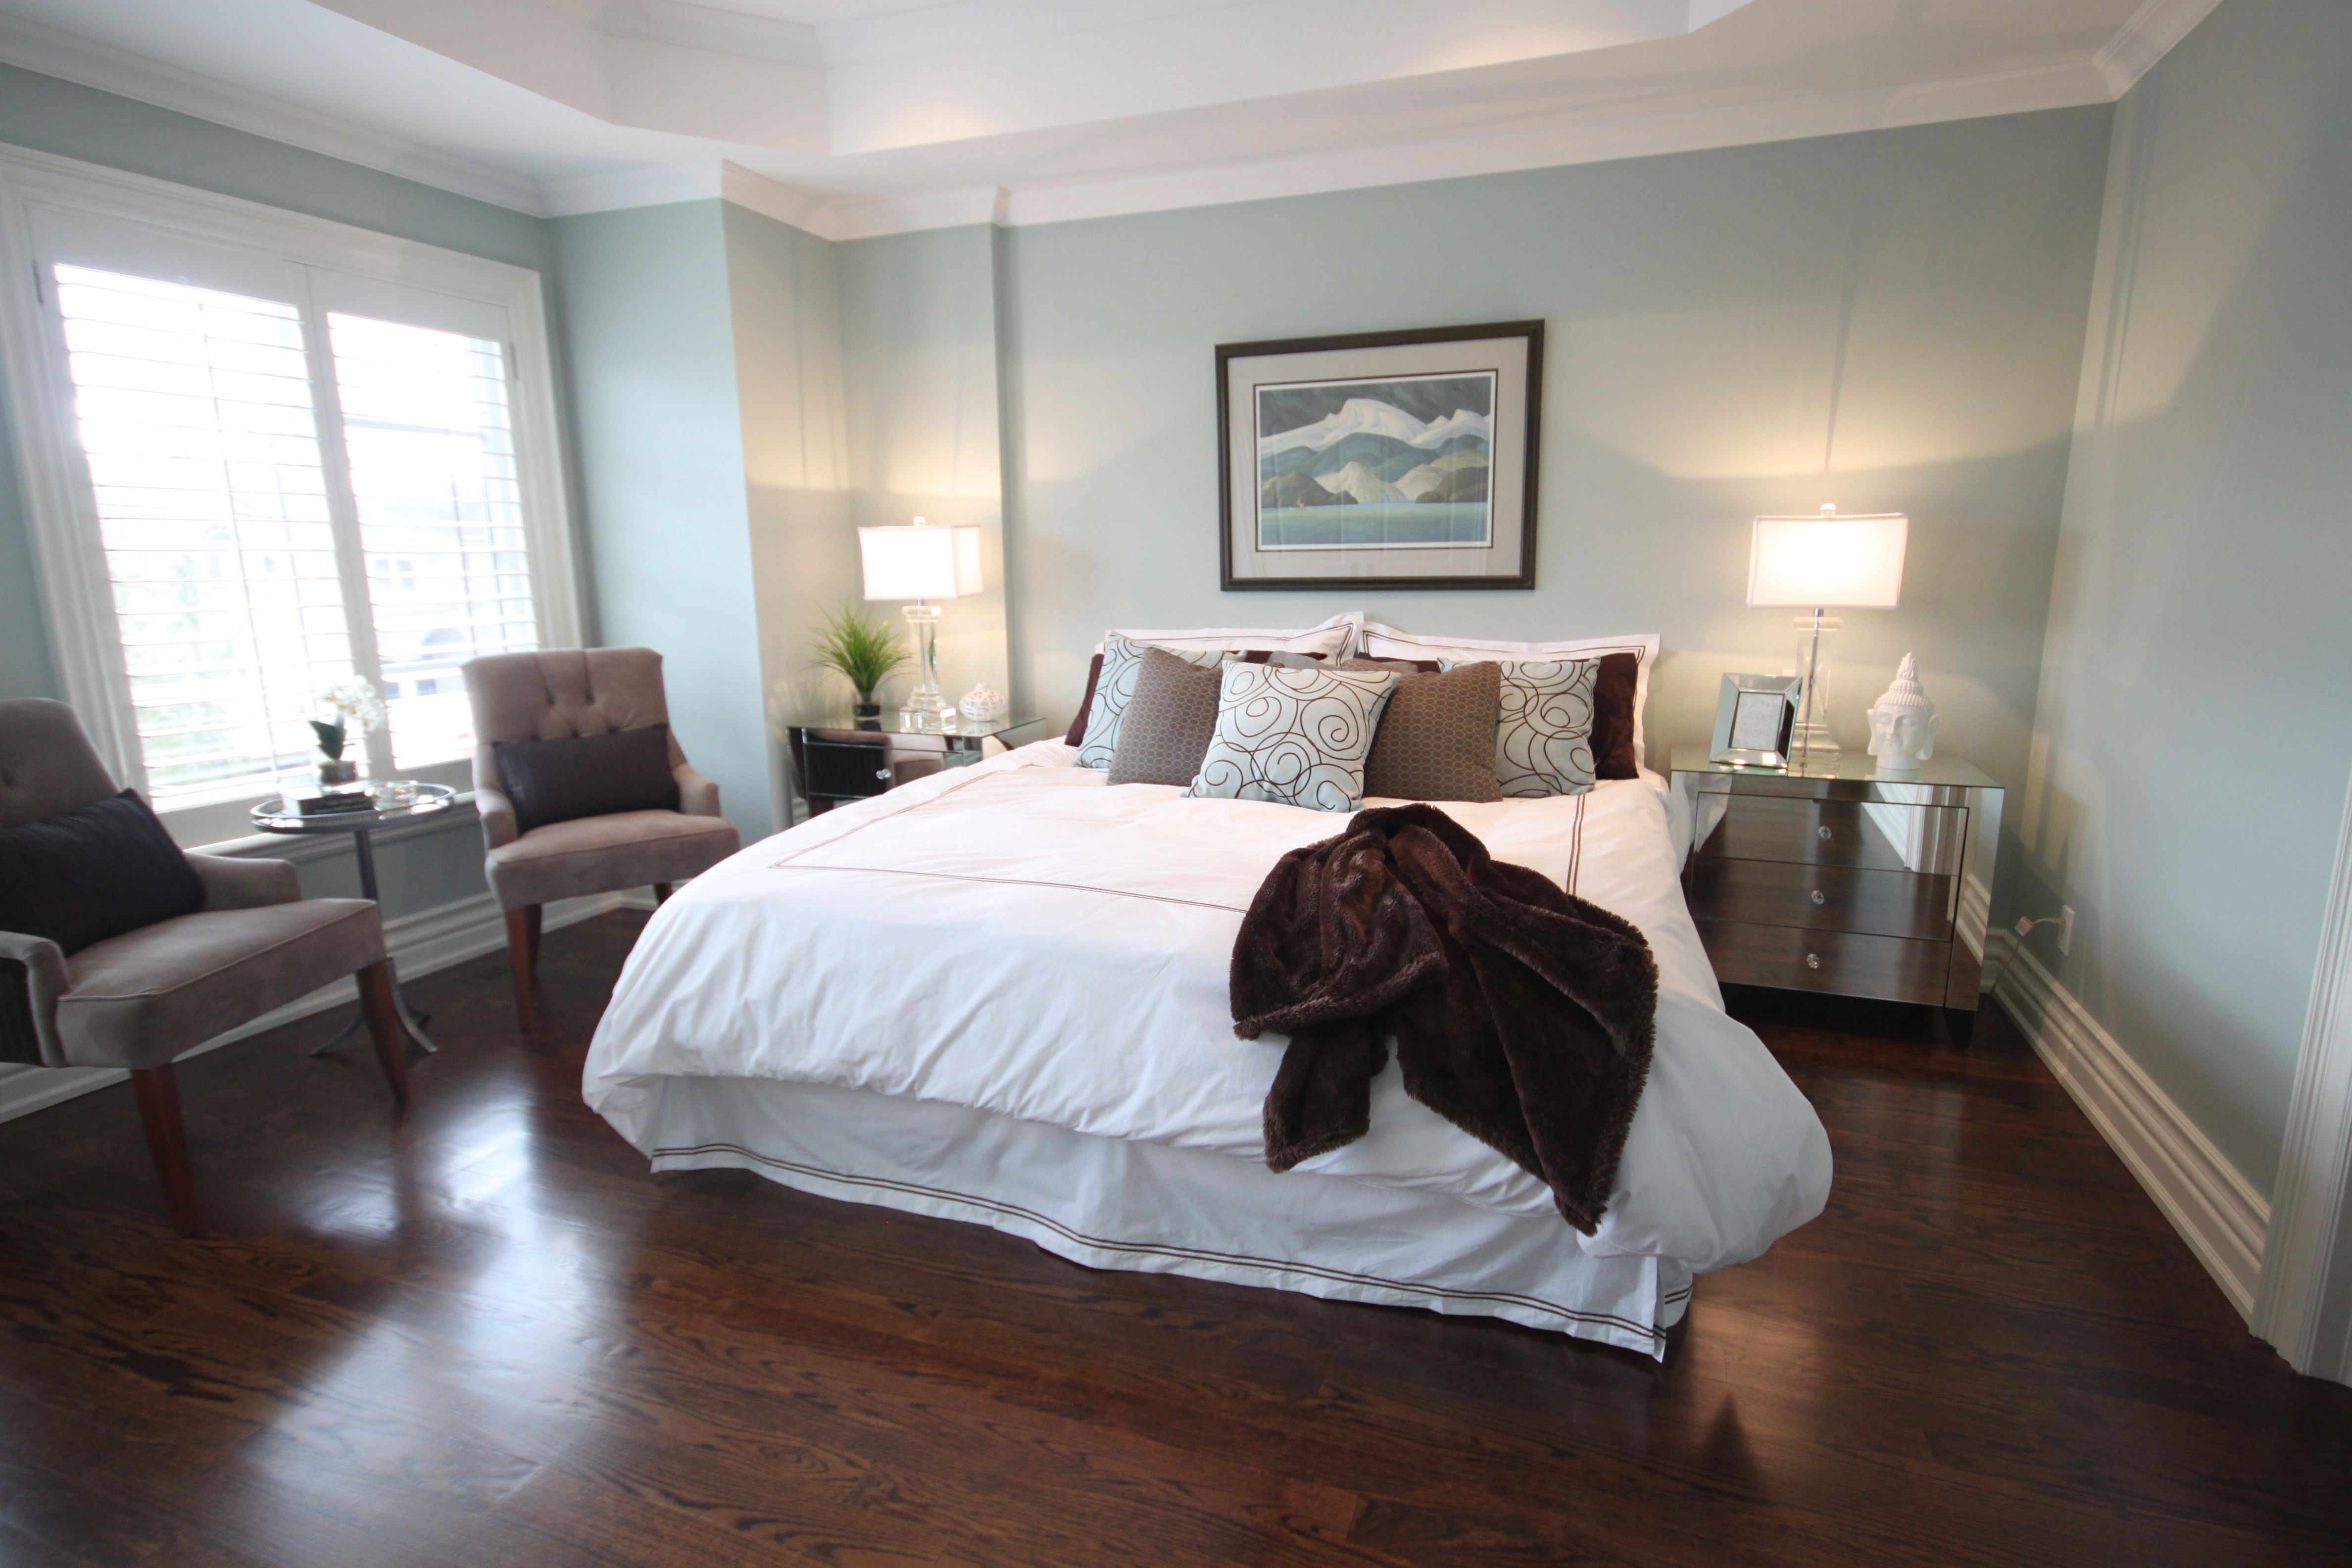 Gorgeous Guest Bedroom Walls Are Silver Marlin 2139 50 Bm